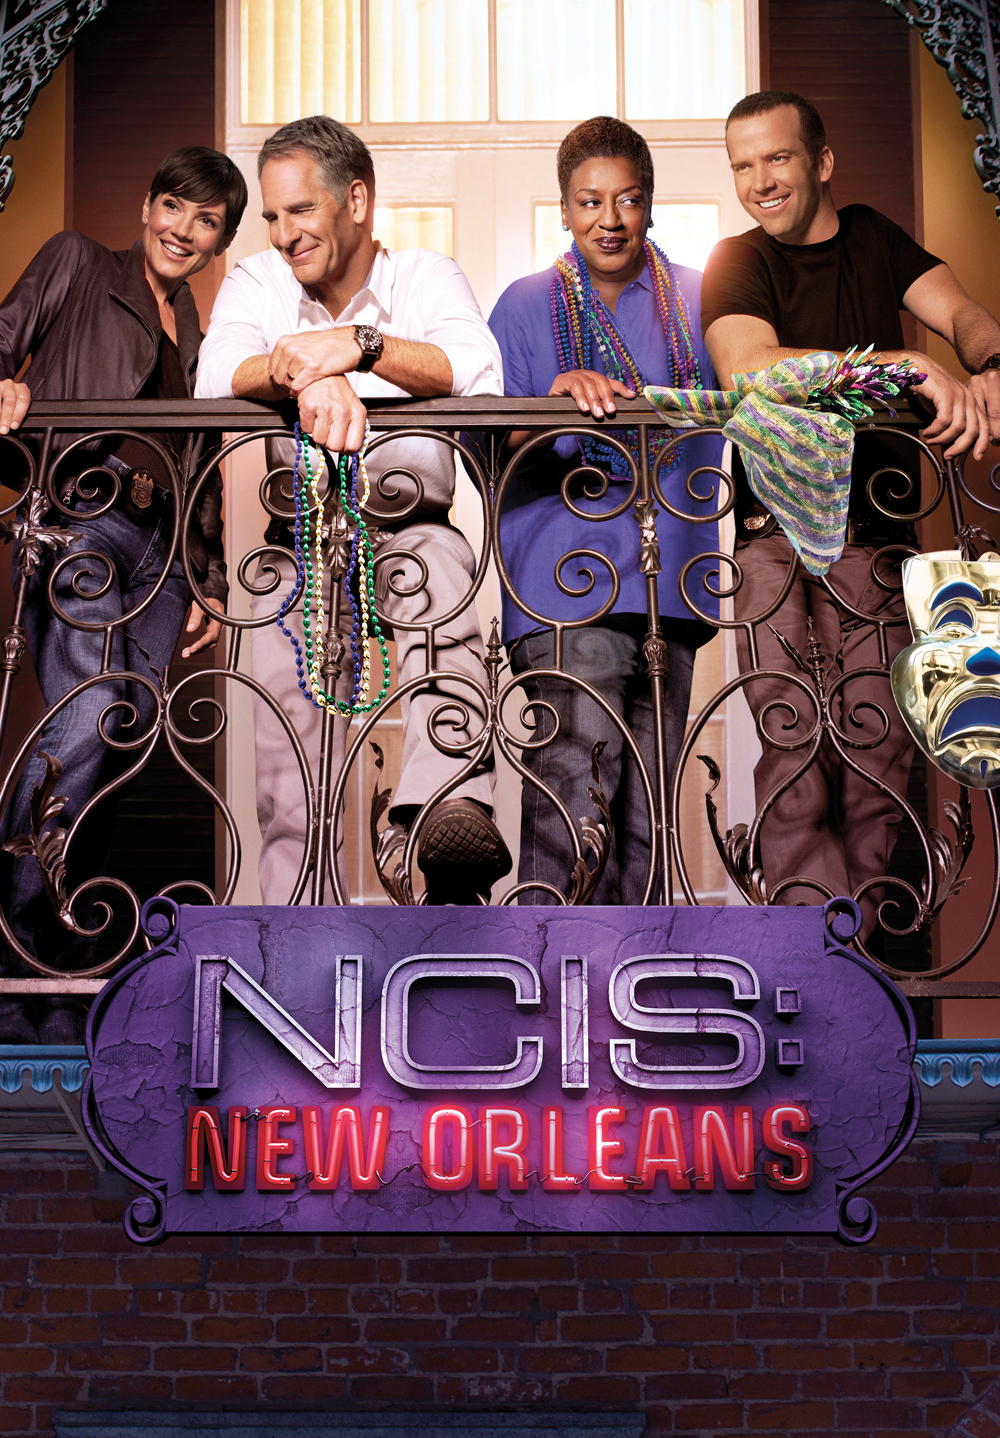 NCIS: New Orleans - coming soon to Ten image - supplied/Ten